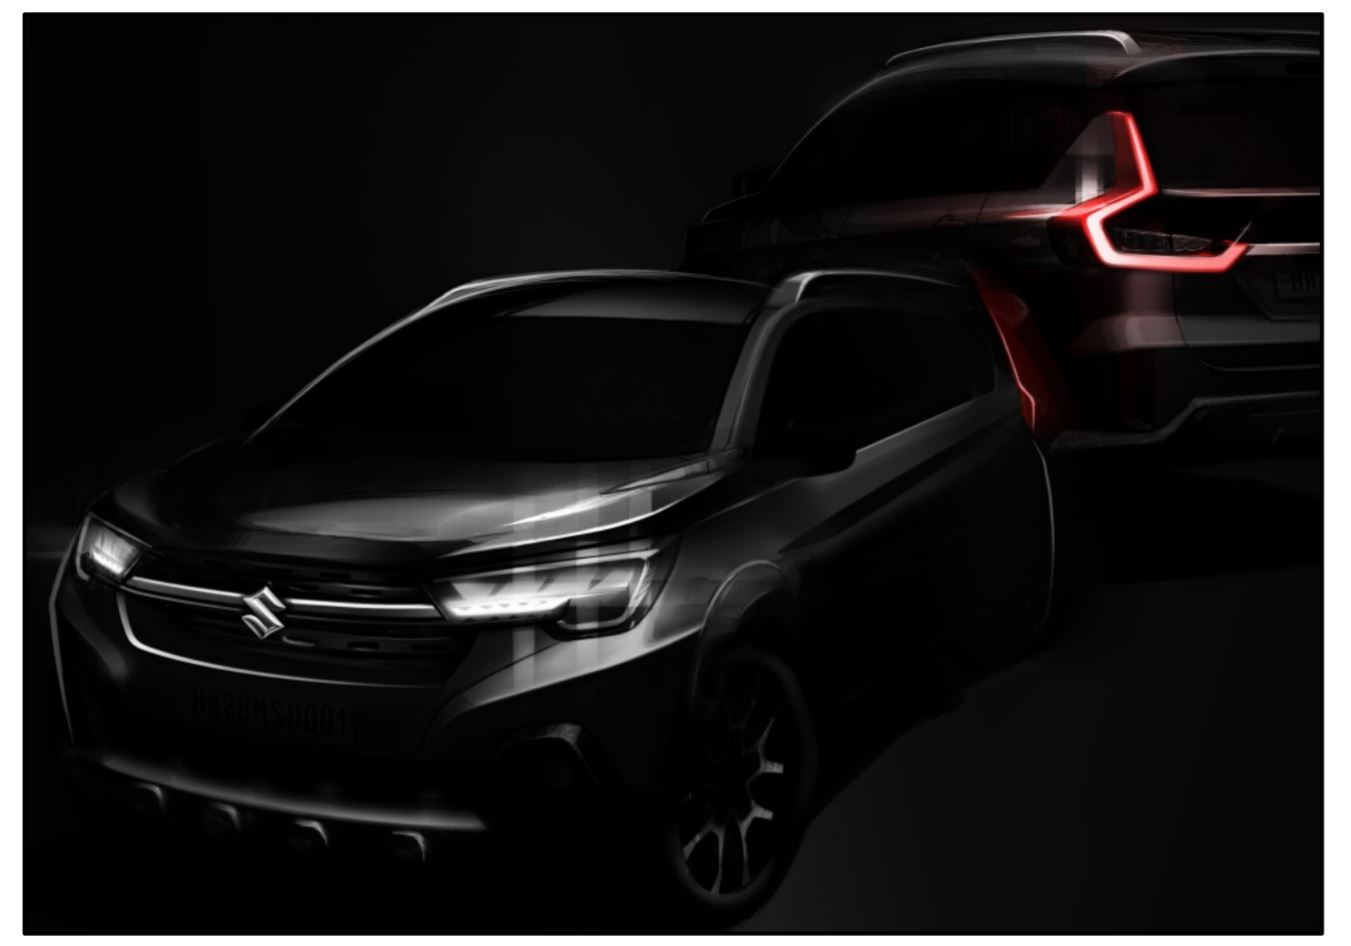 Maruti Suzuki releases 'first sketch' of Innova-rival XL6, launch soon